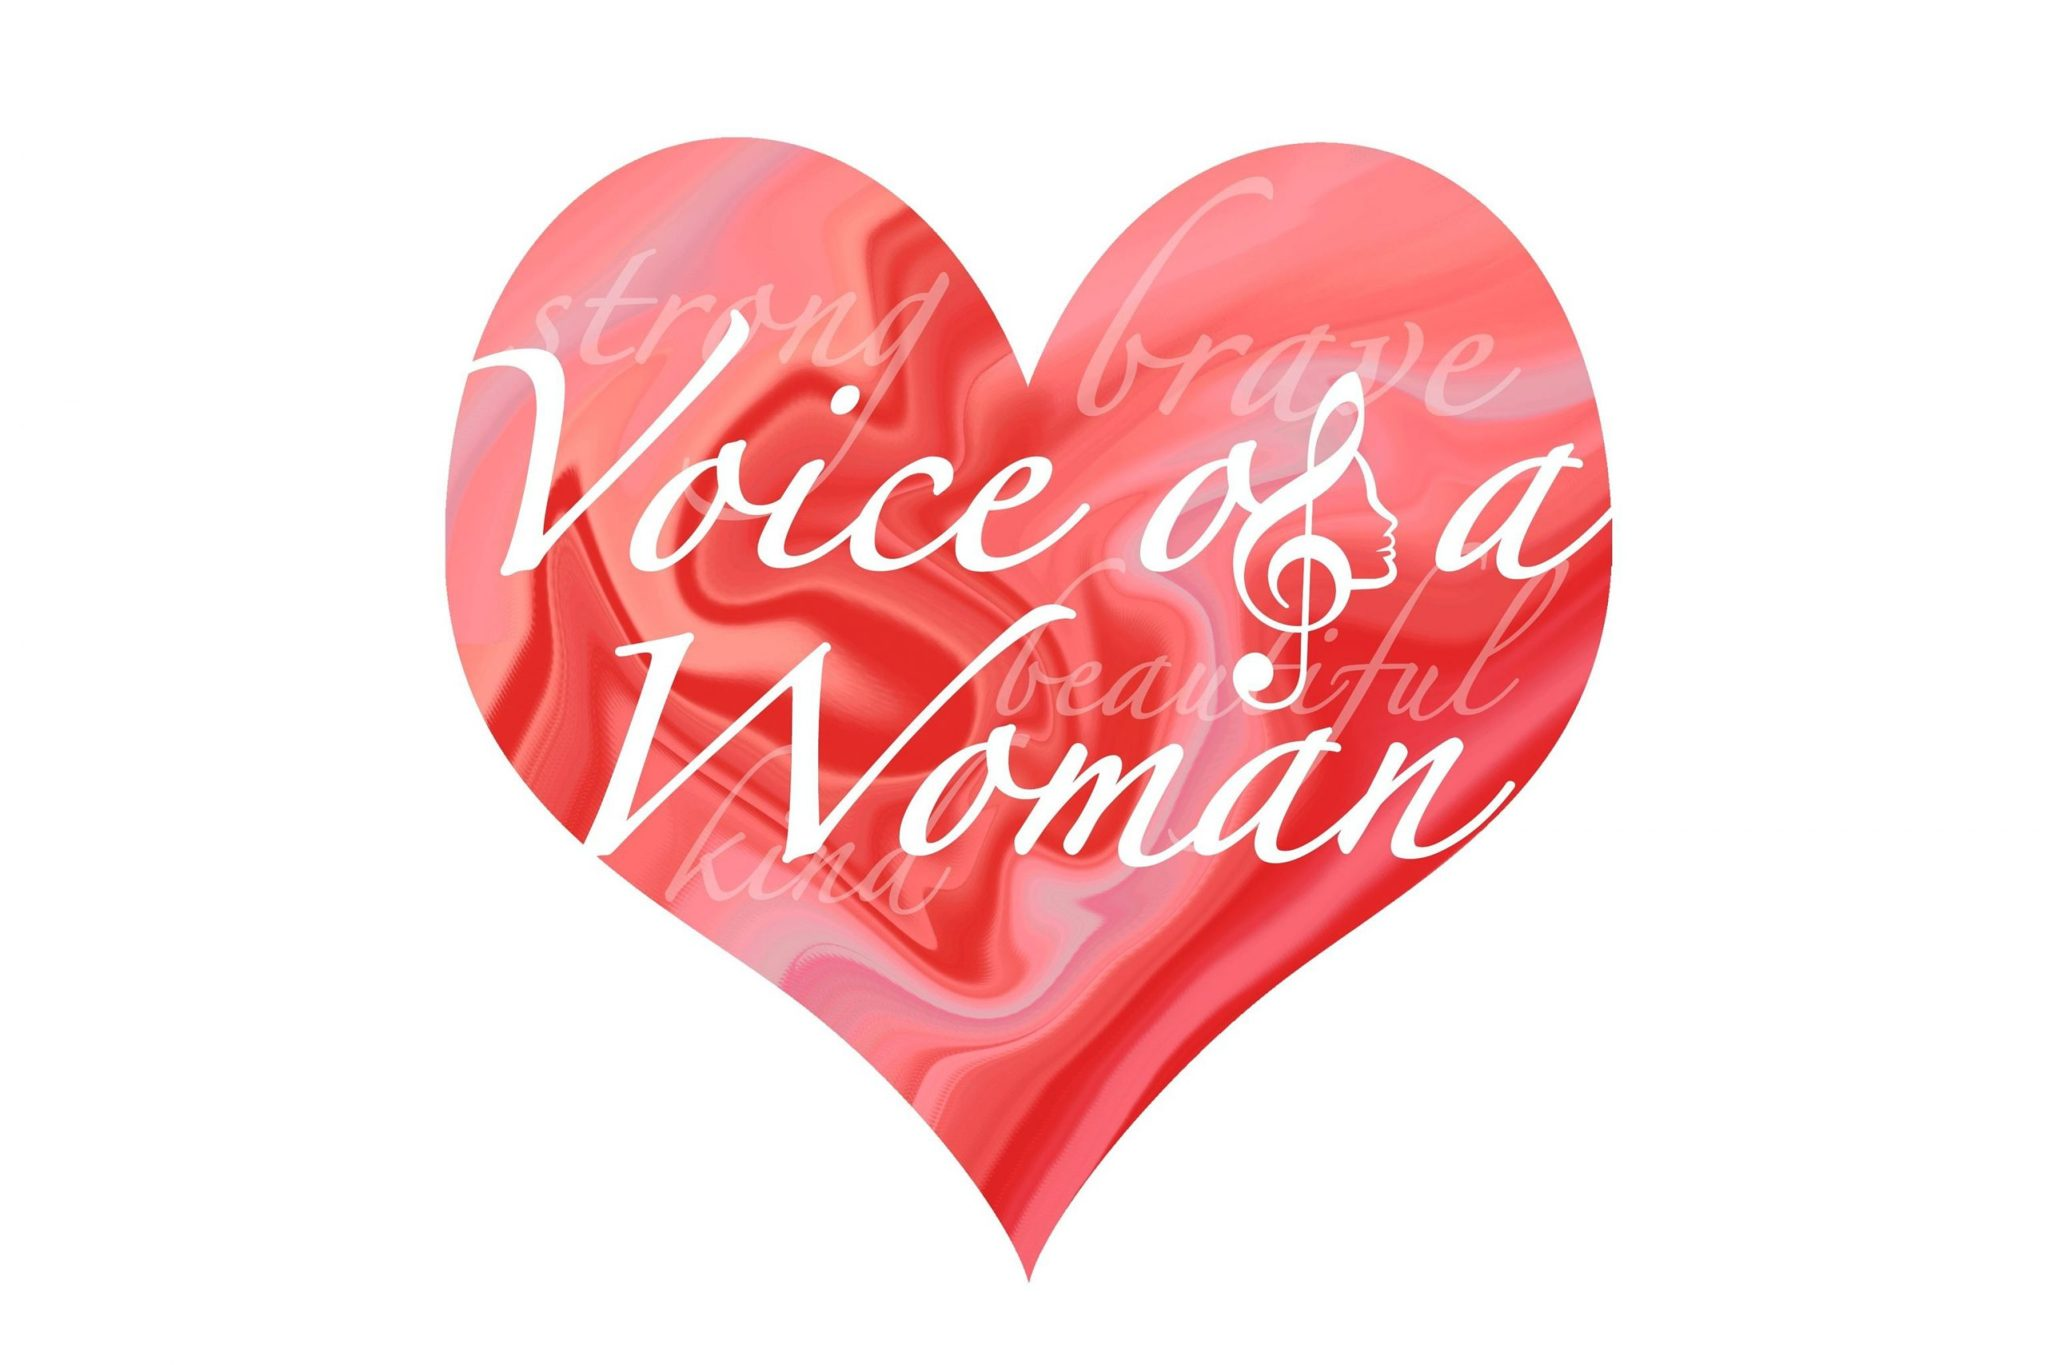 Voice Of A Woman 32